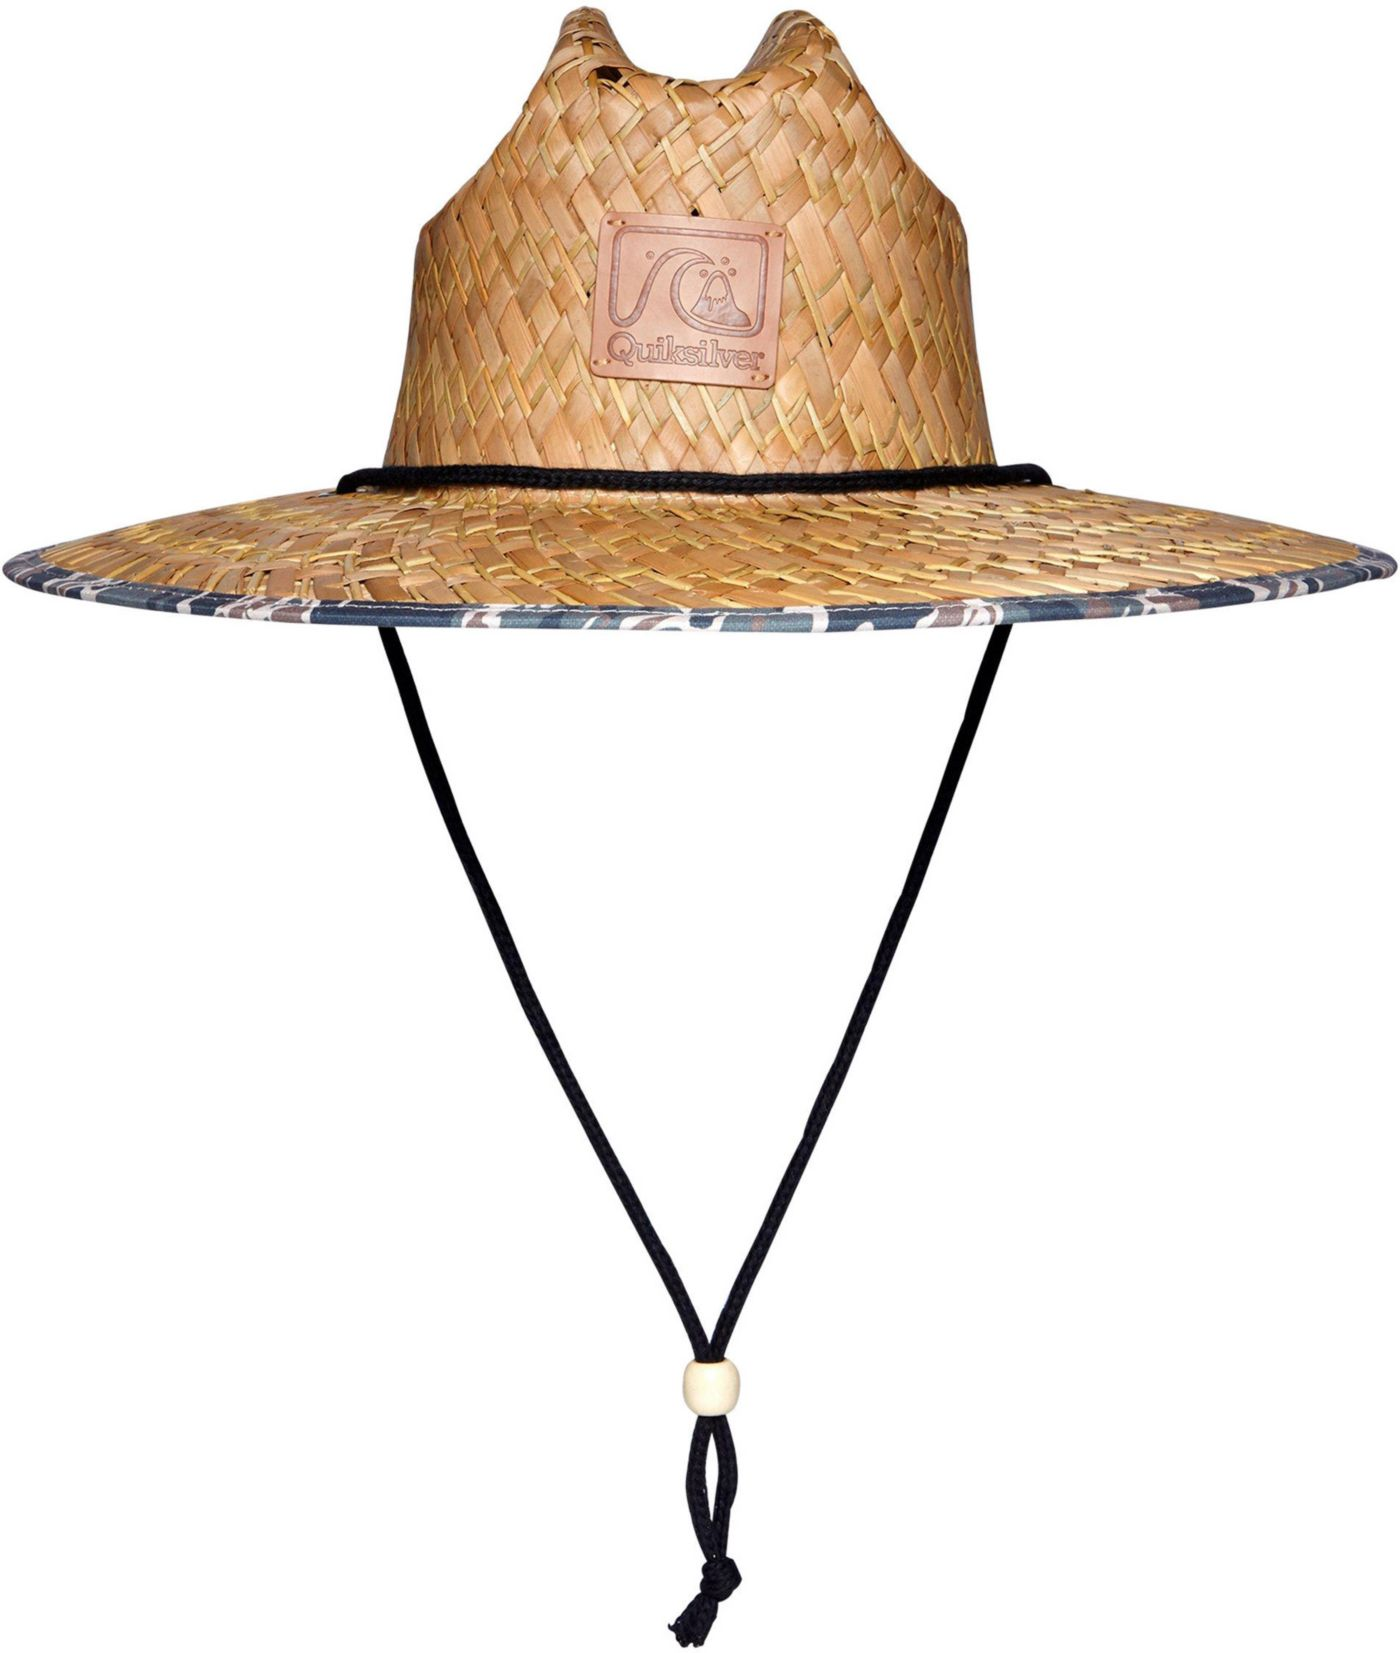 Quiksilver Men's Outsider Straw Hat